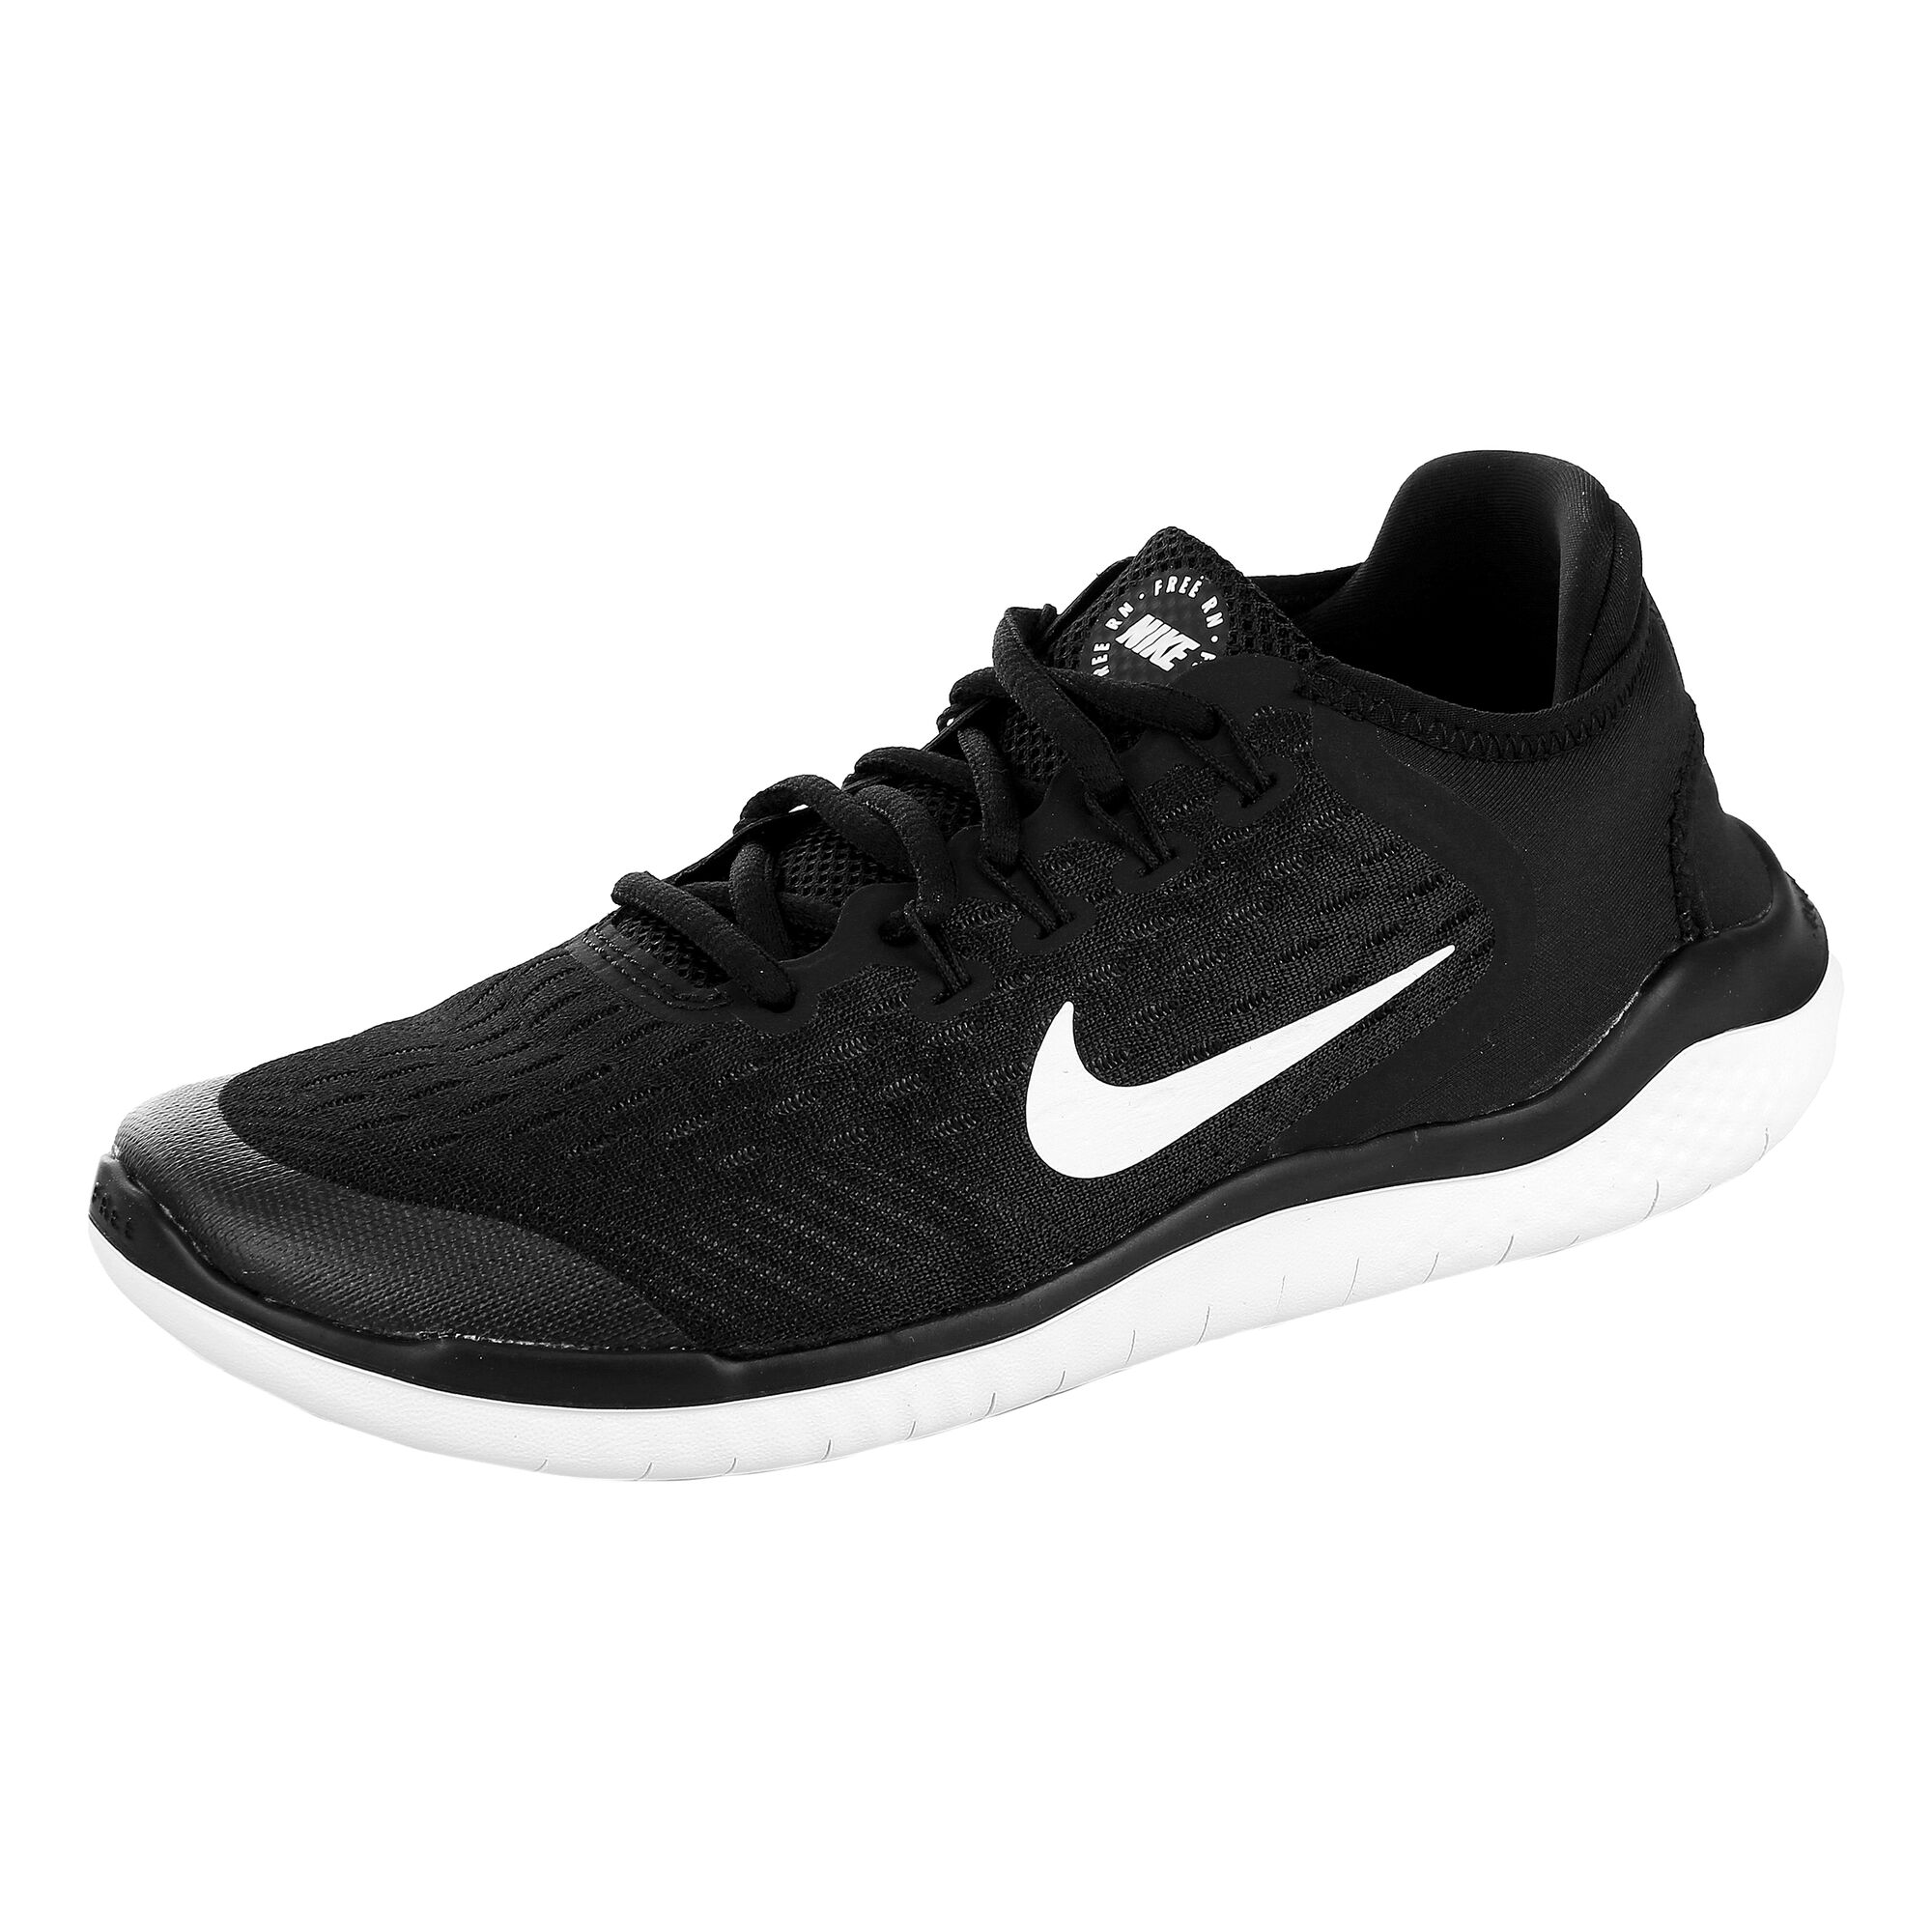 hot sale online ff20b c0d2f buy Nike Free Run 2018 Natural Running Shoe Kids - Black ...